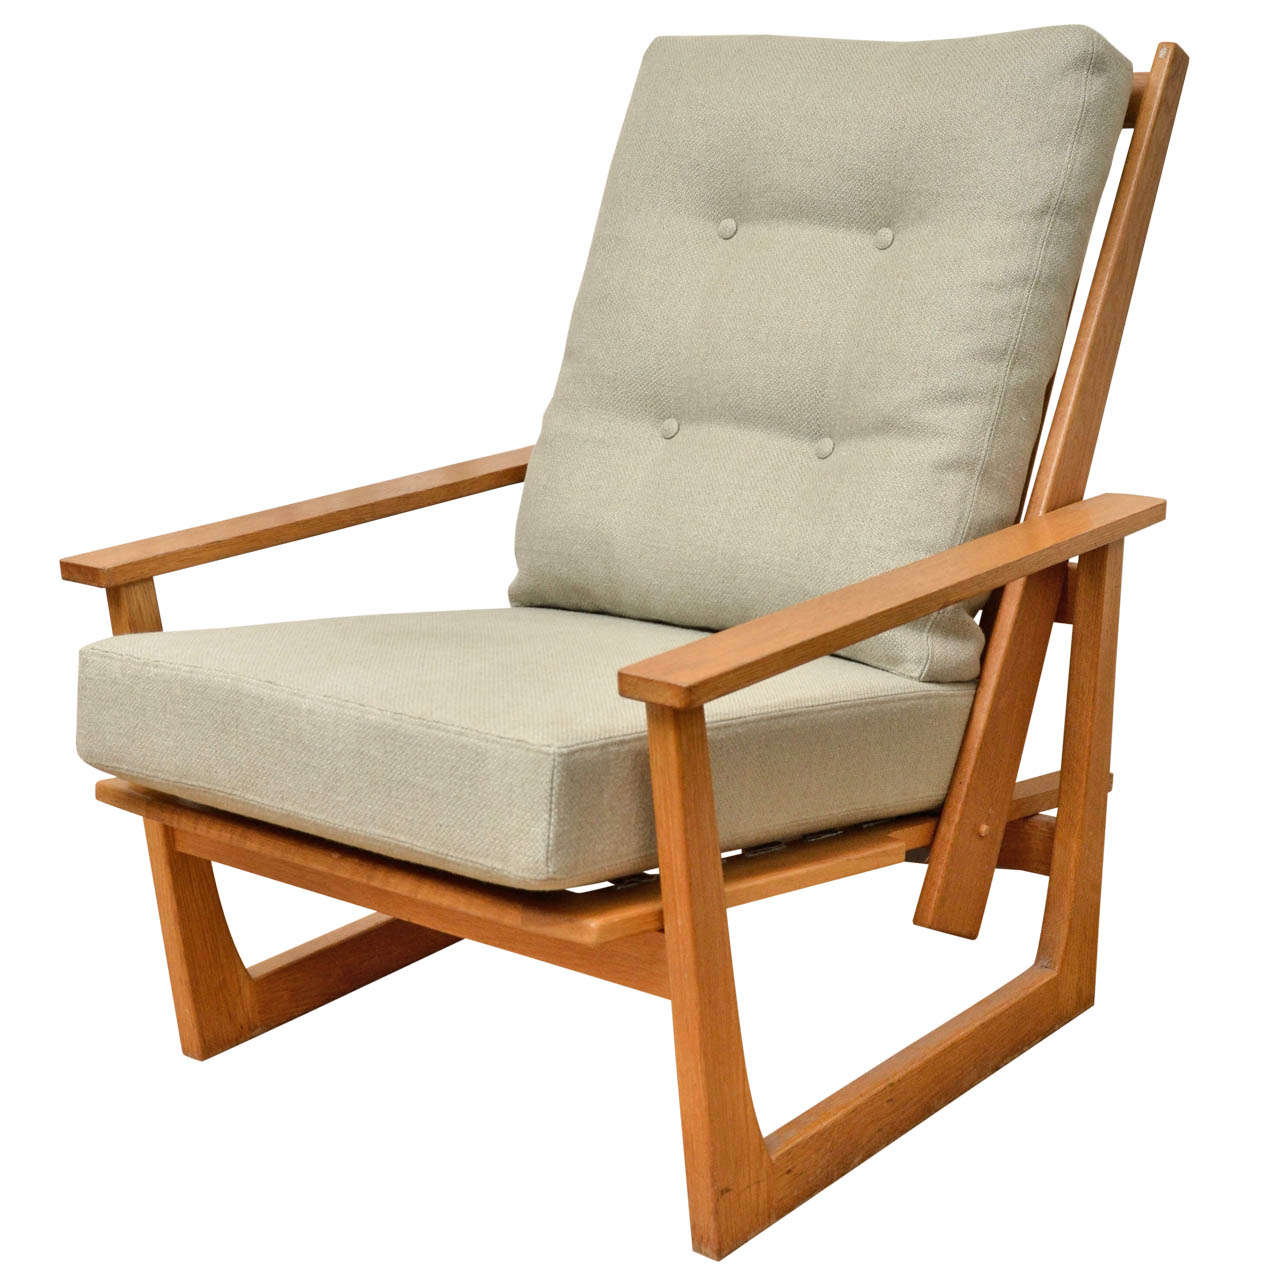 wooden lounge chairs senior chair yoga reclining at 1stdibs